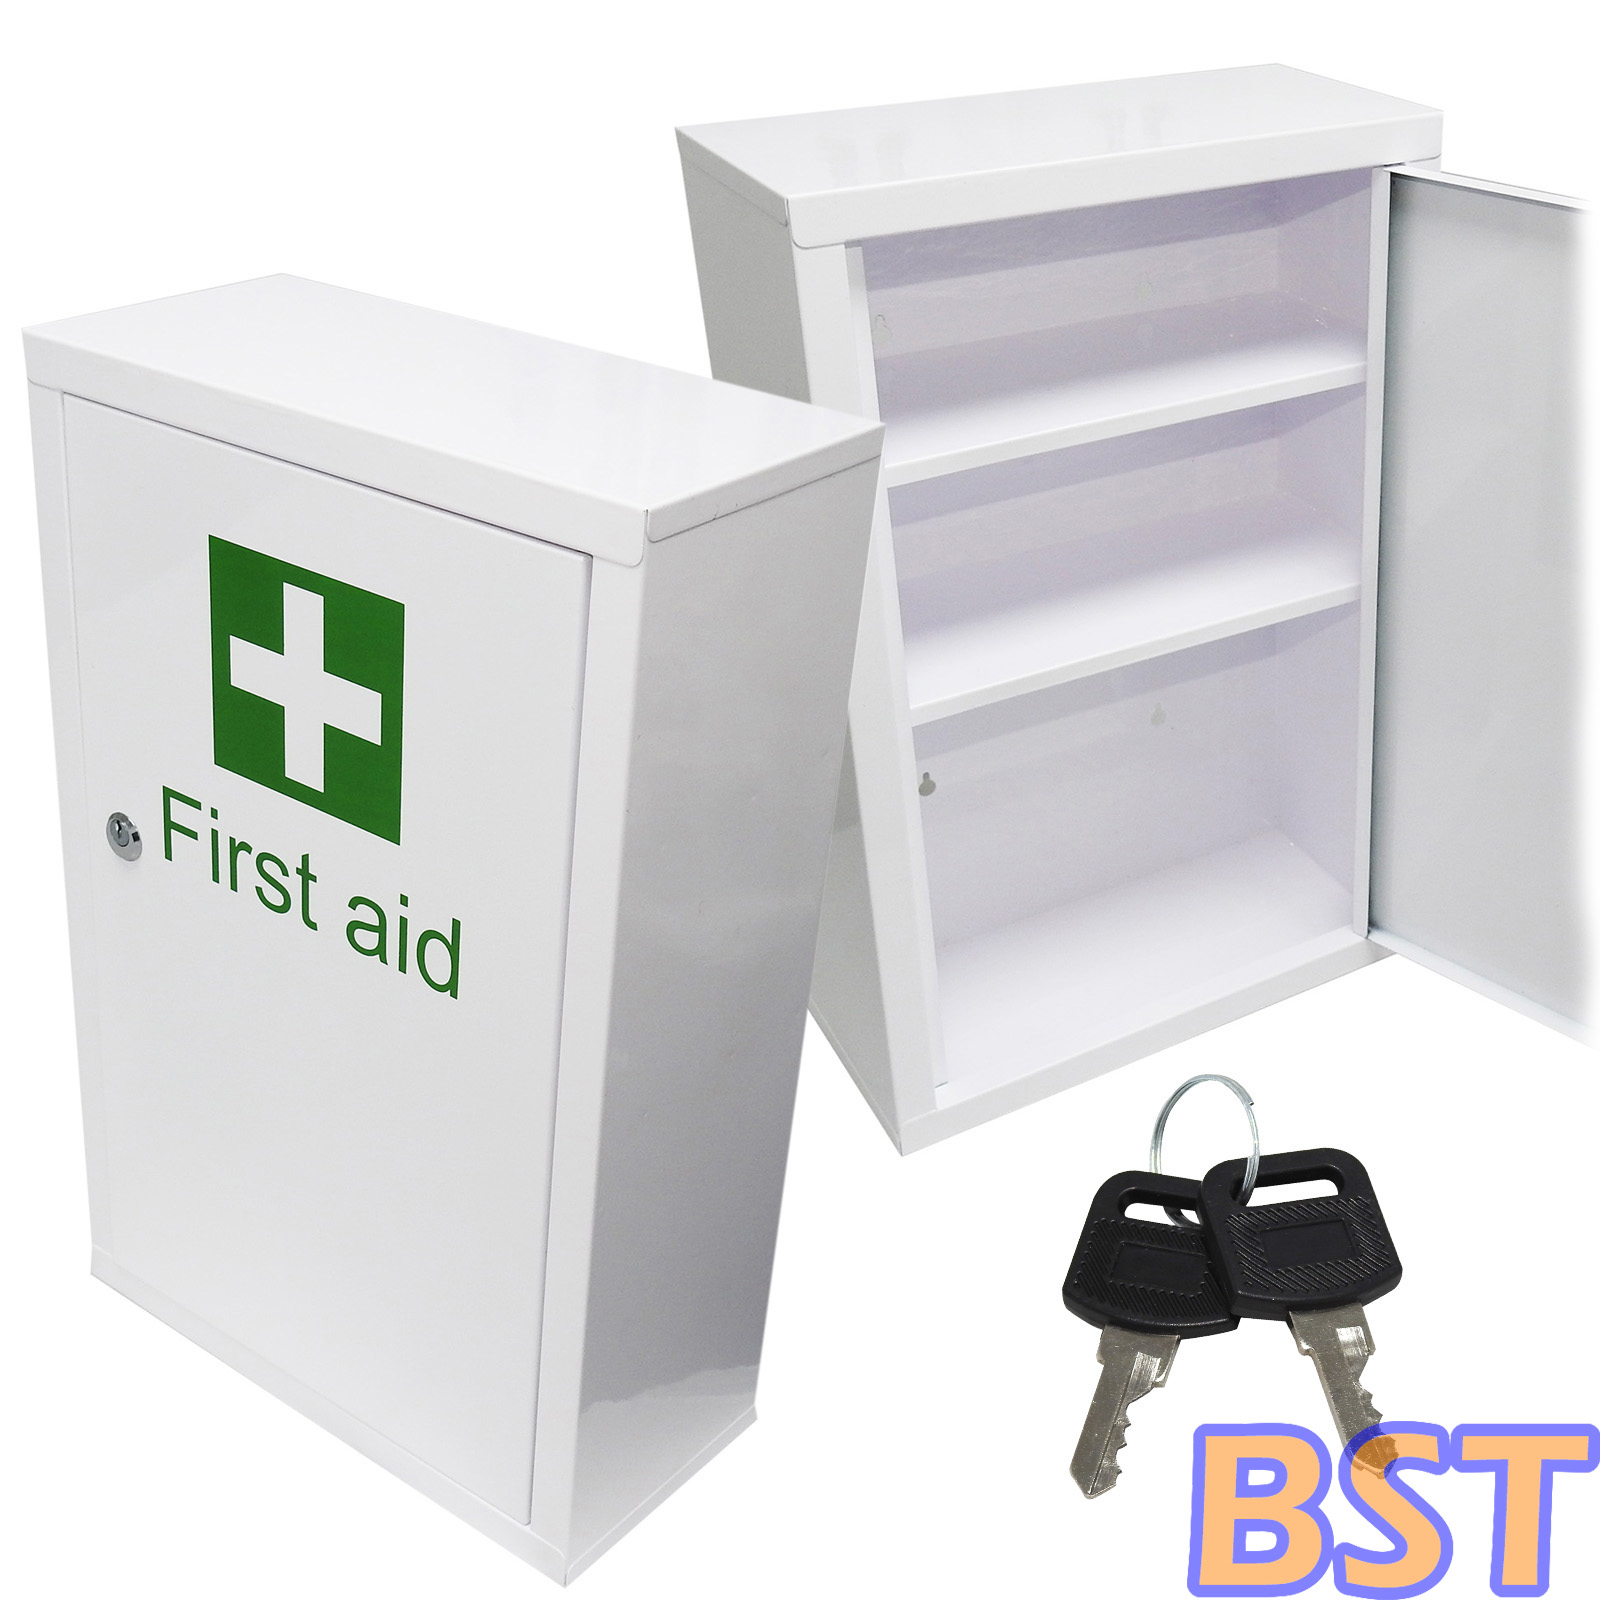 qualicare large medicine first aid medical wall mount cabinet cupboard keys ebay. Black Bedroom Furniture Sets. Home Design Ideas